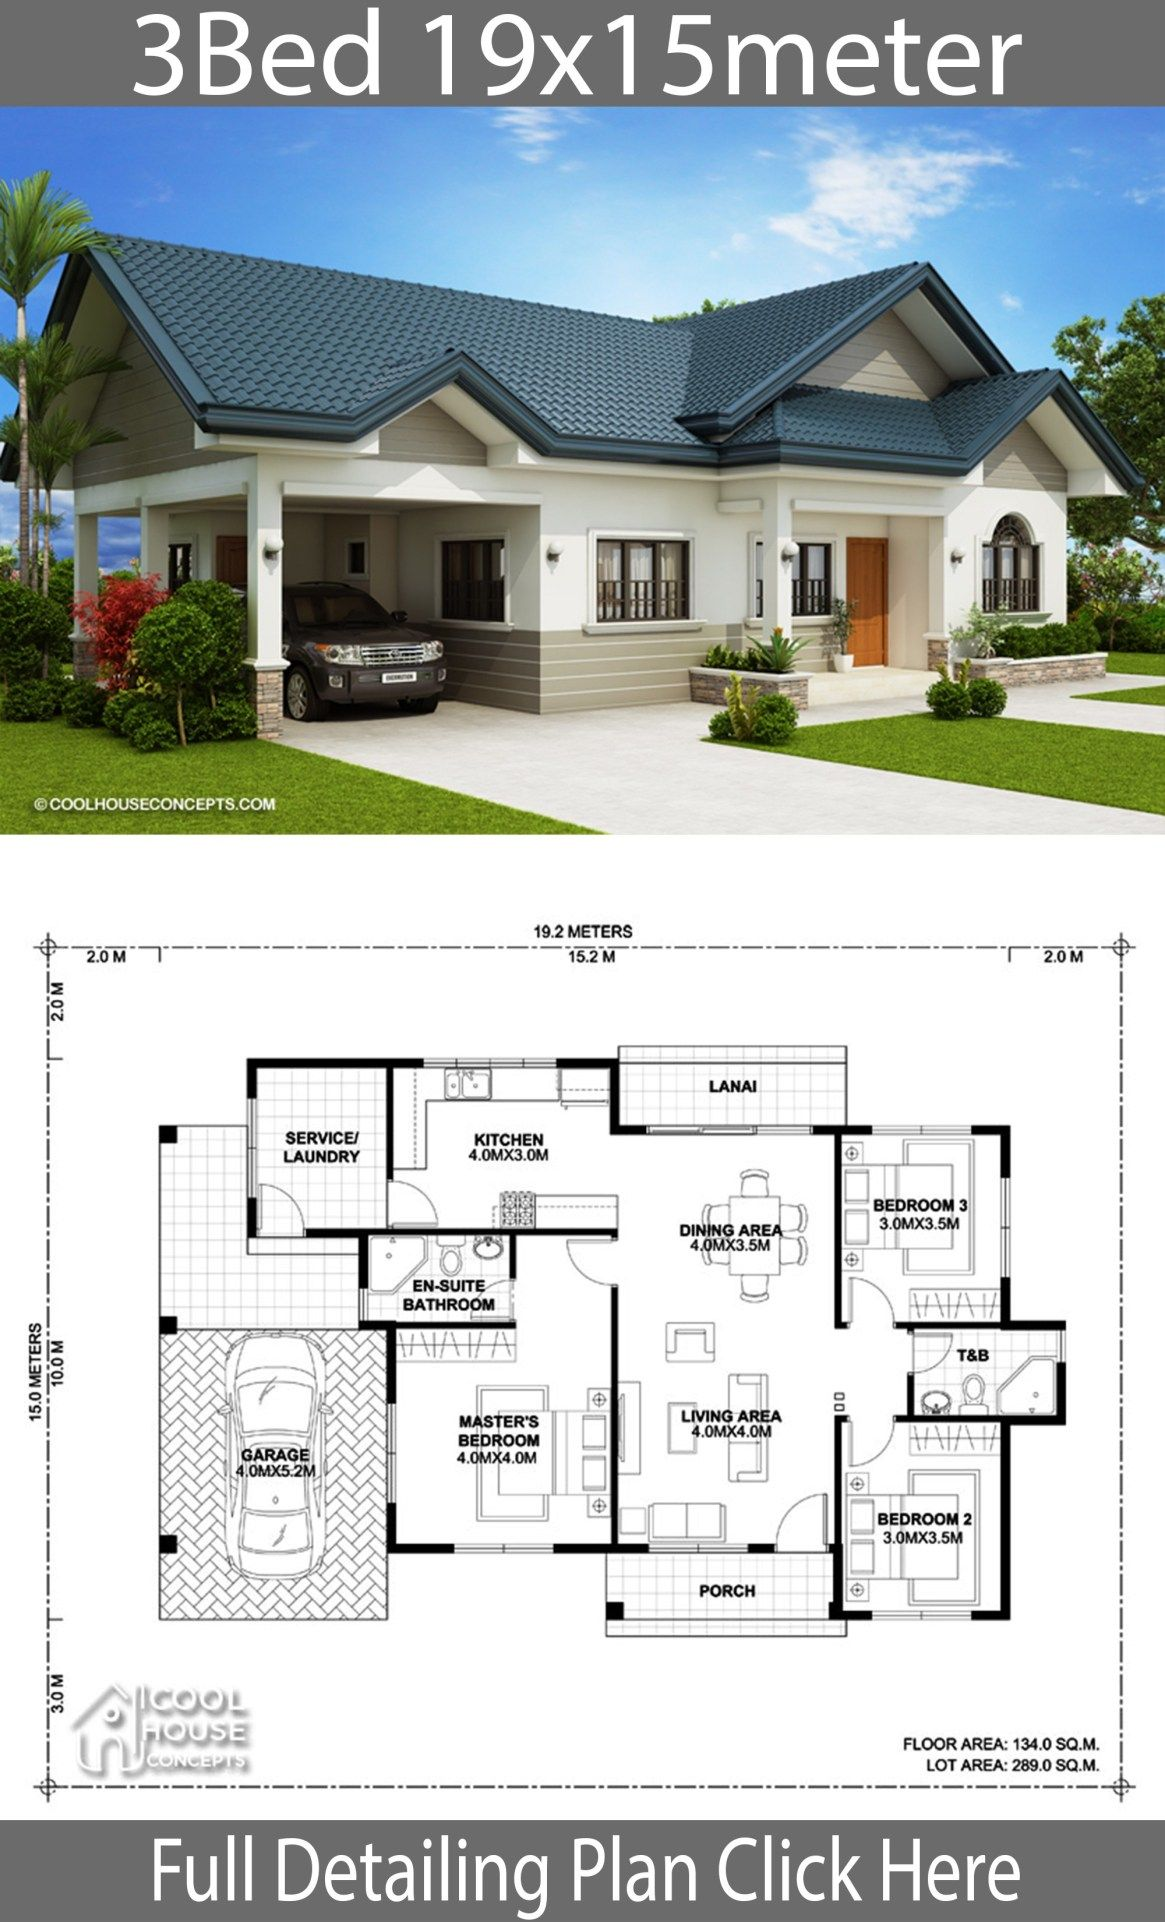 Home Design Plan 15x20m With 3 Bedrooms Home Design With Plansearch House Construction Plan House Plan Gallery Family House Plans